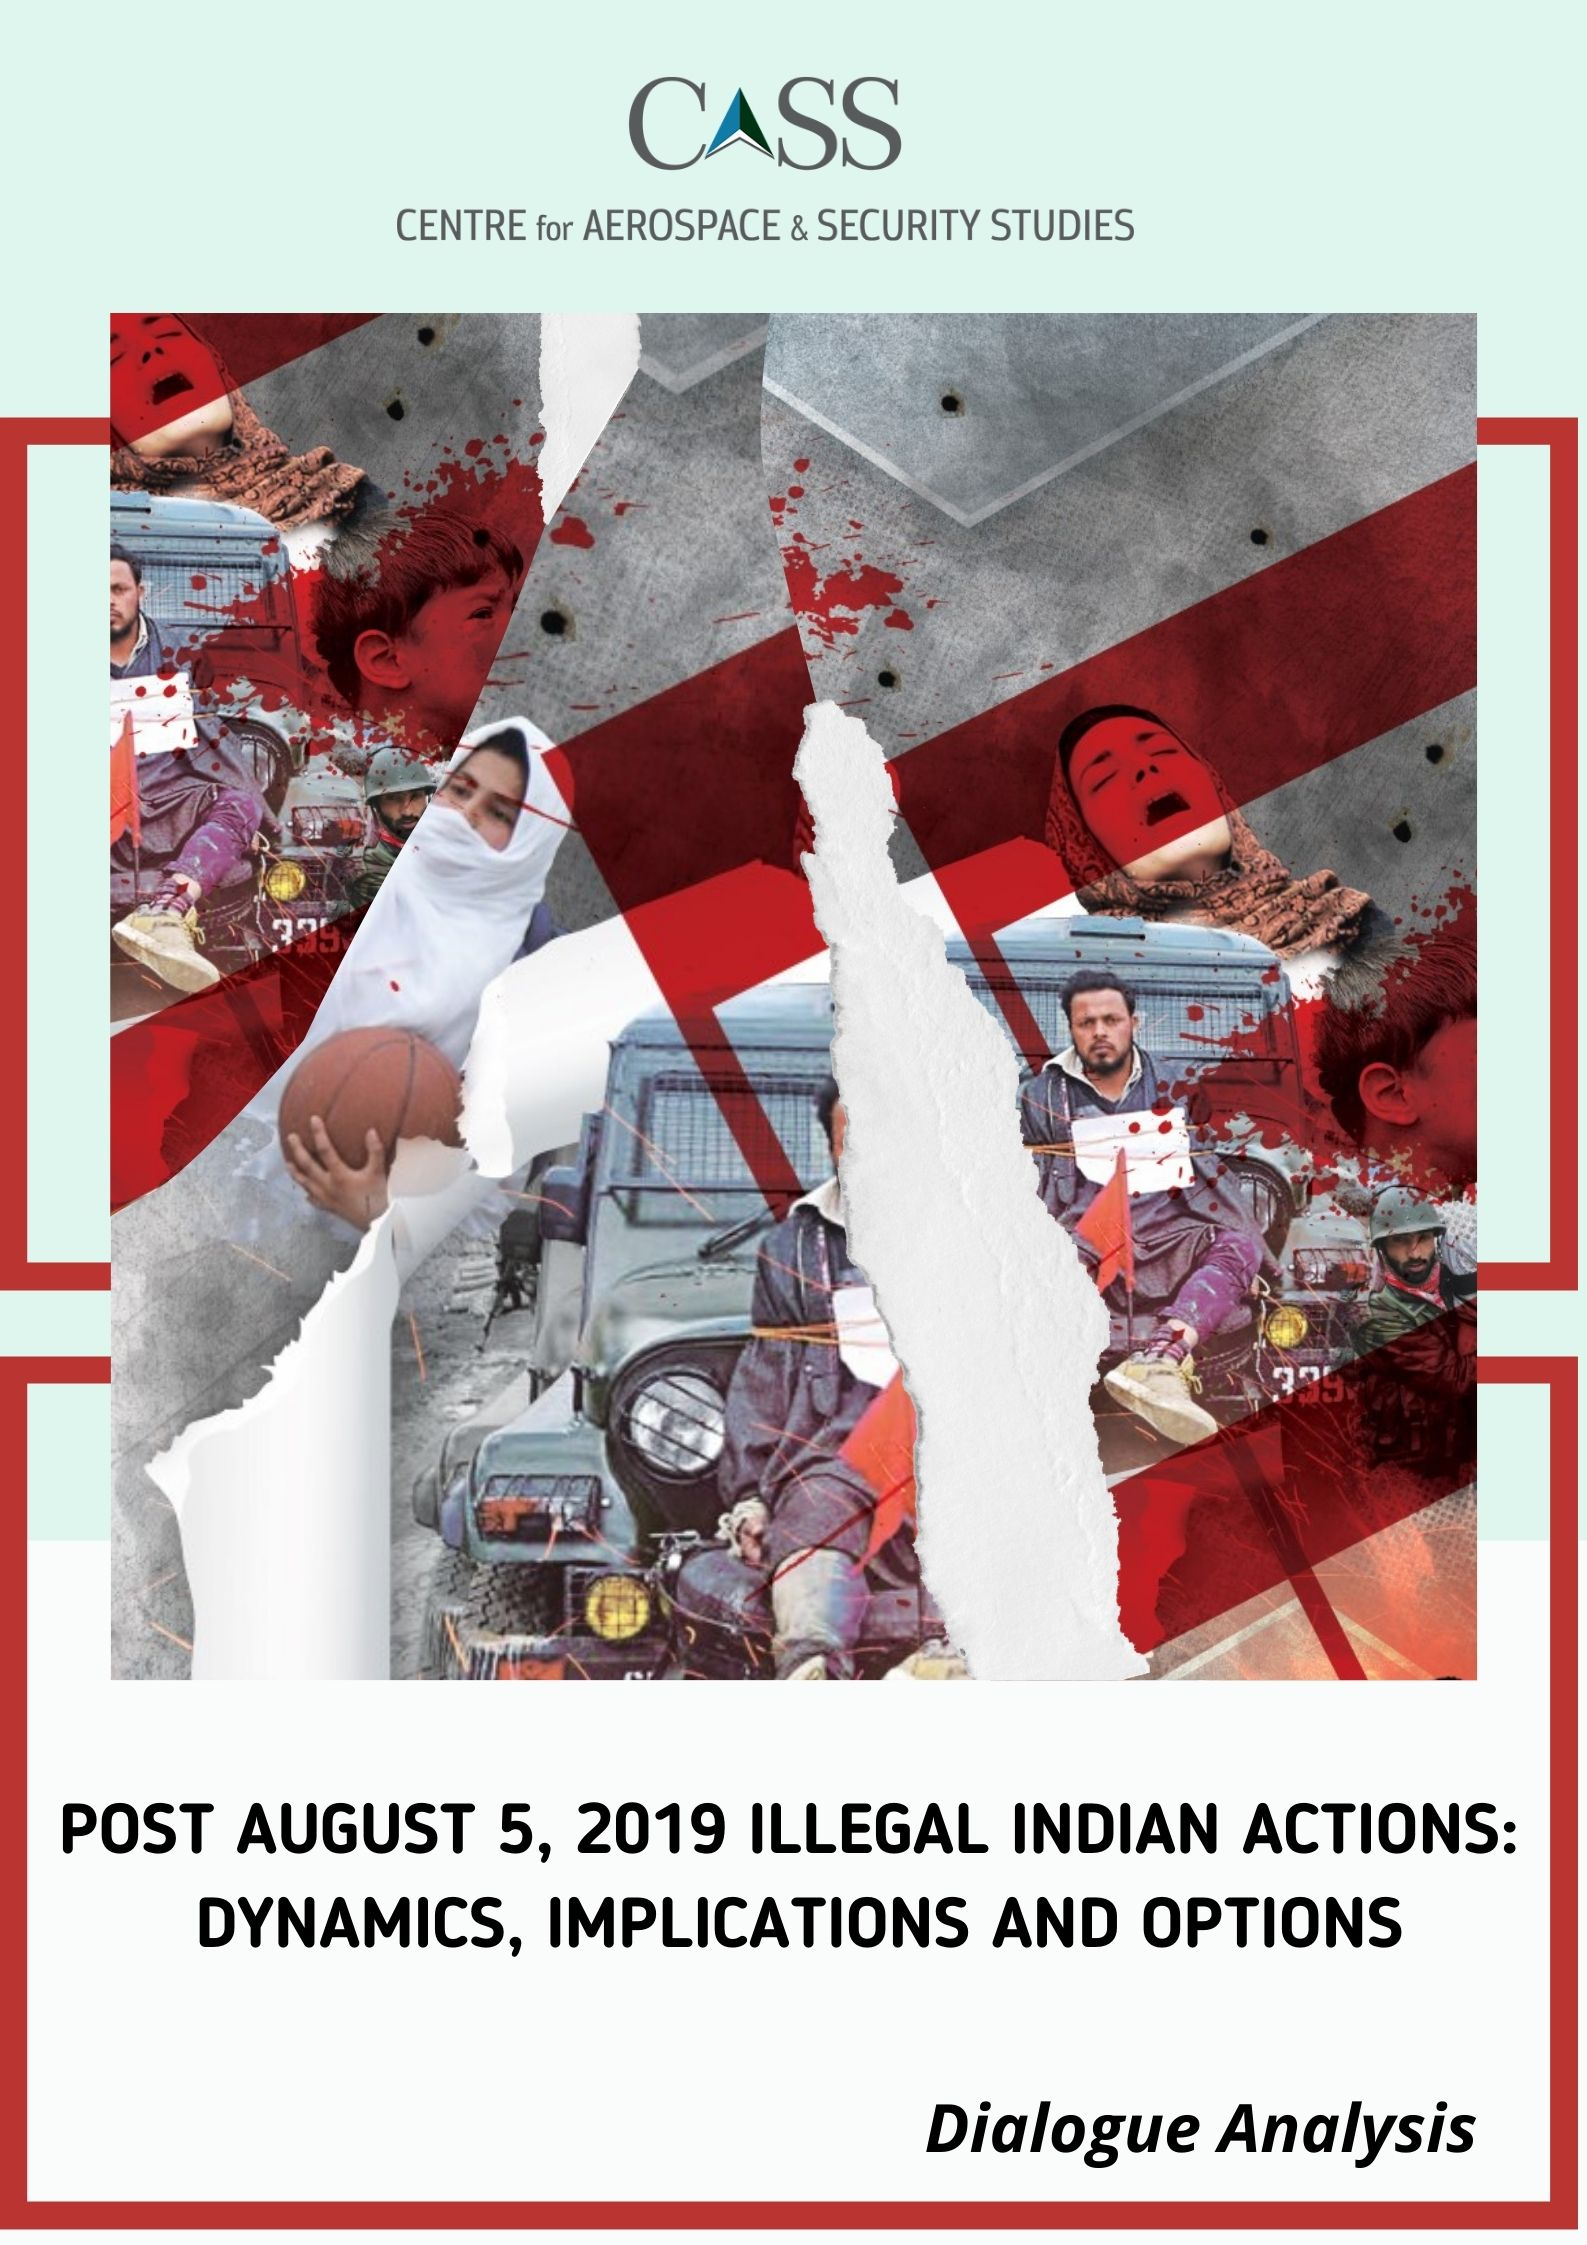 Post August 5, 2019 Illegal Indian Actions: Dynamics, Implications and Options